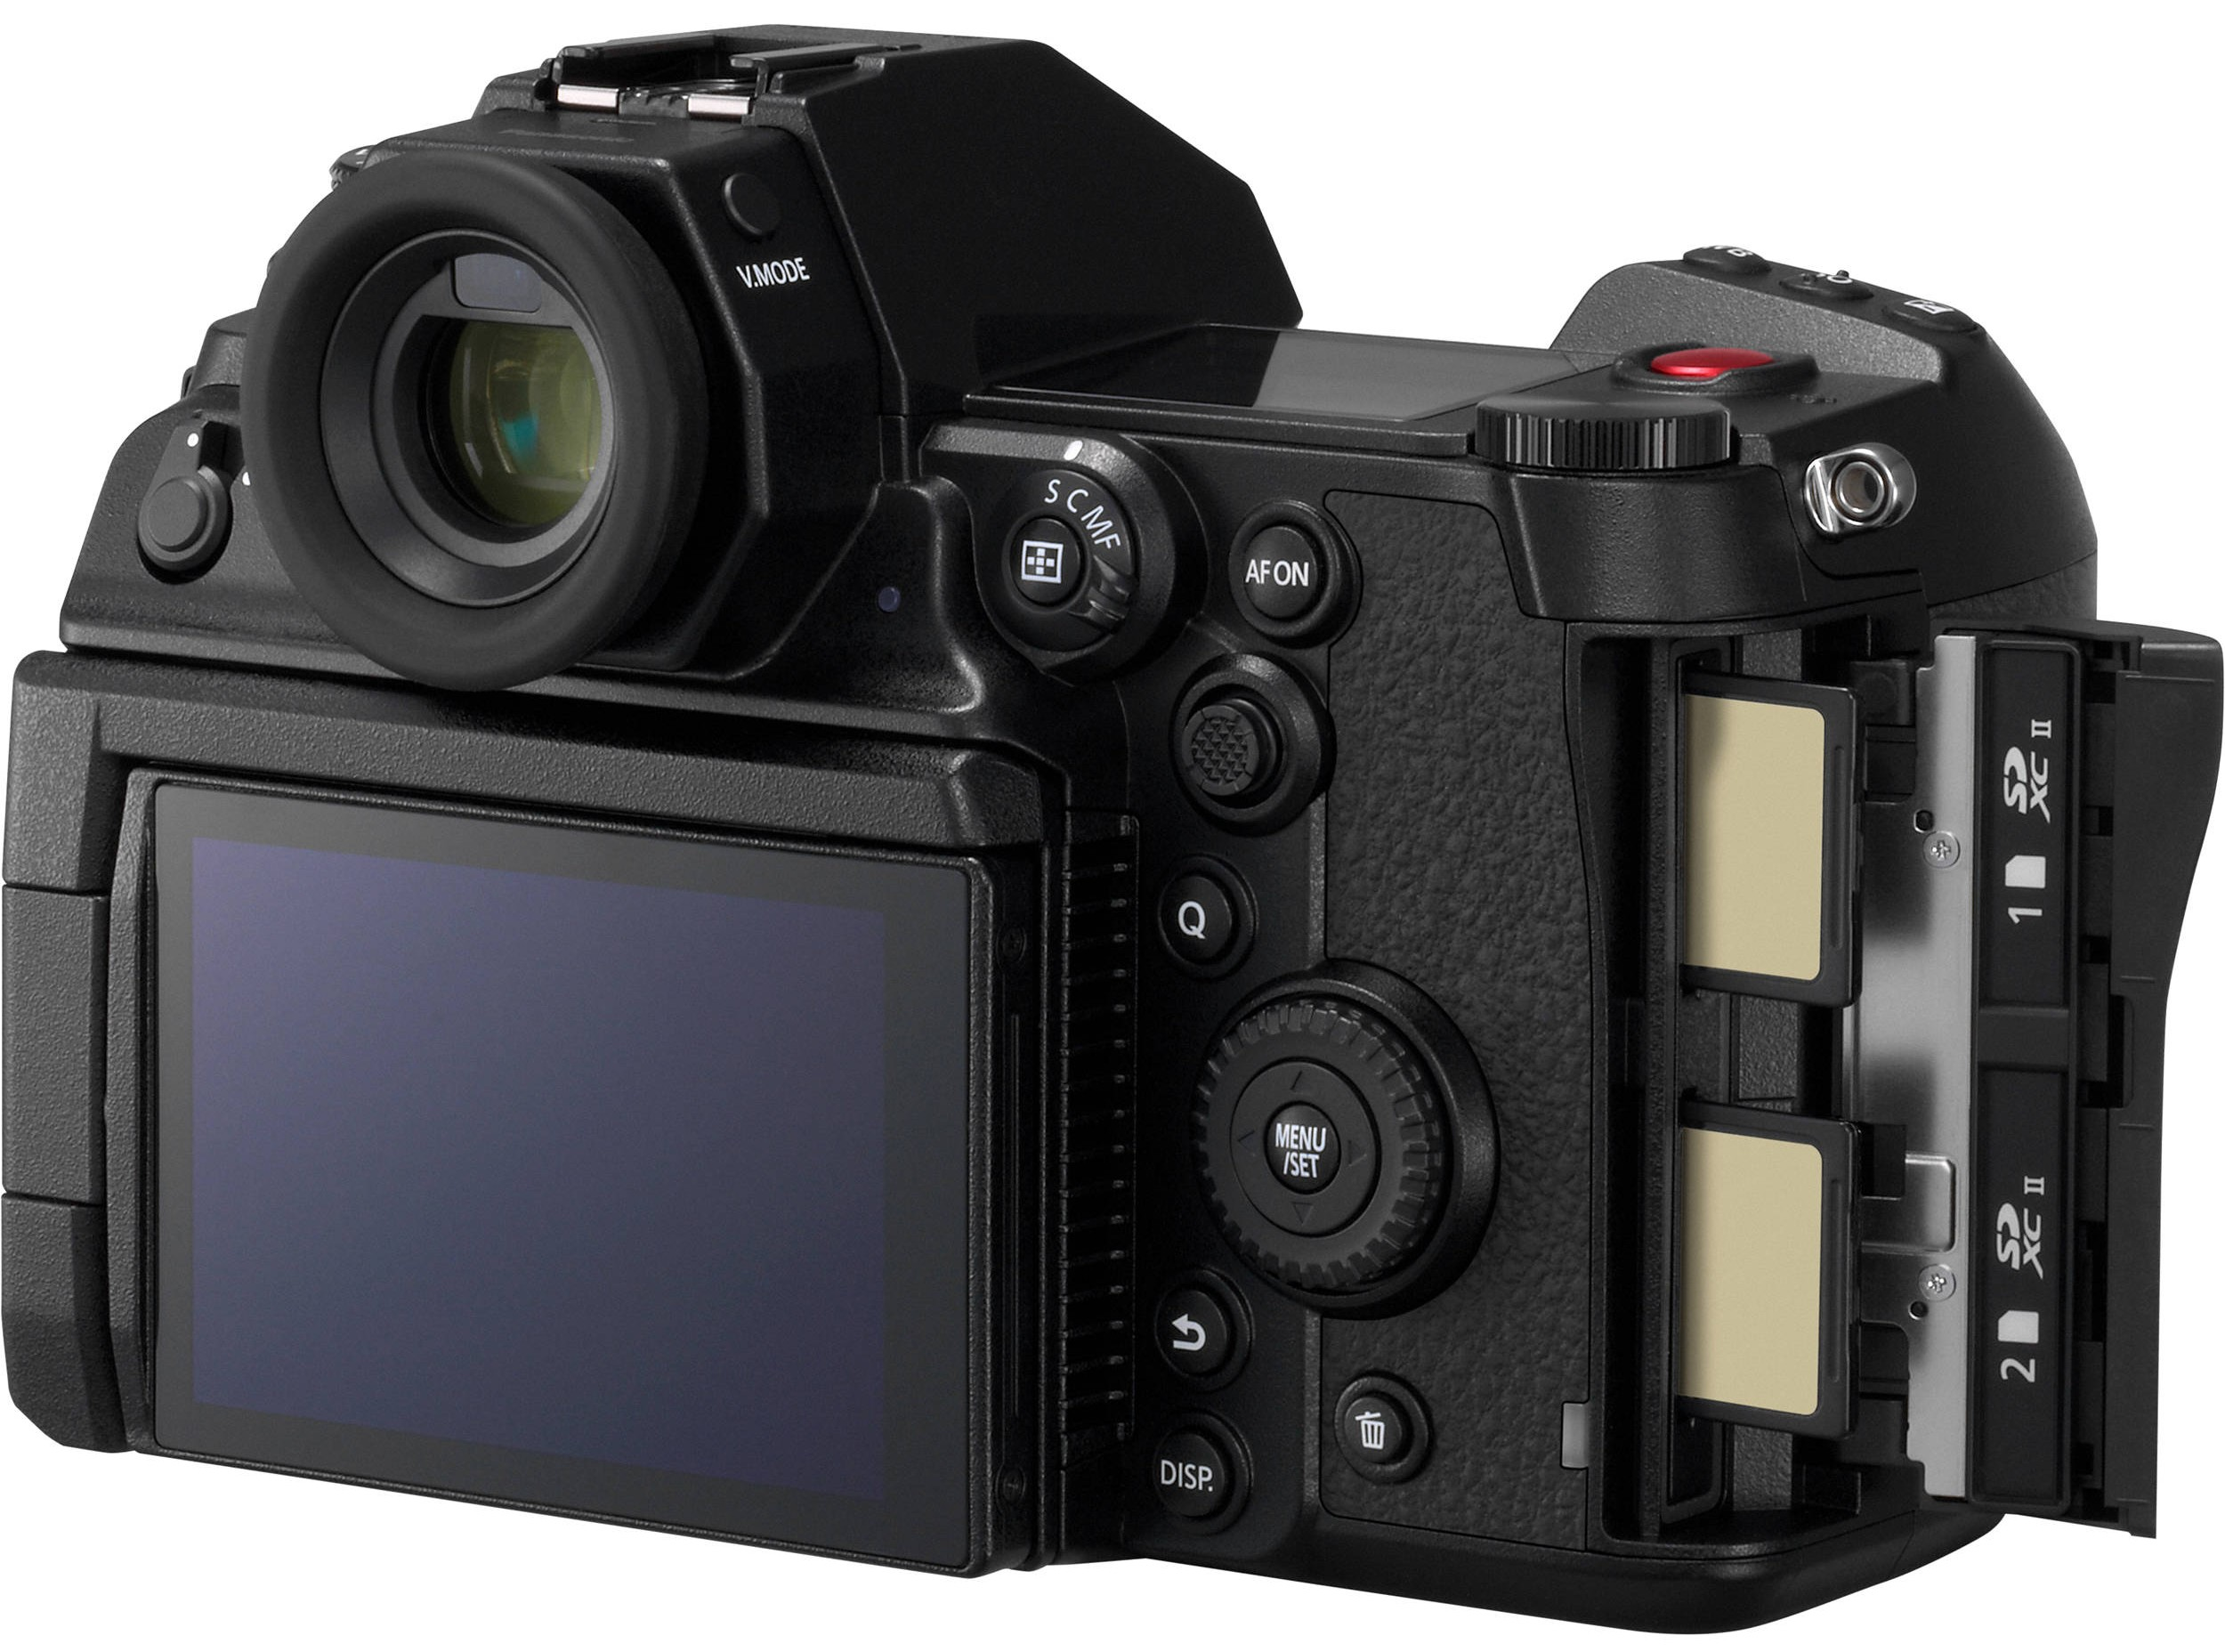 Panasonic launches new LUMIX S1H with Cinema-Quality Video